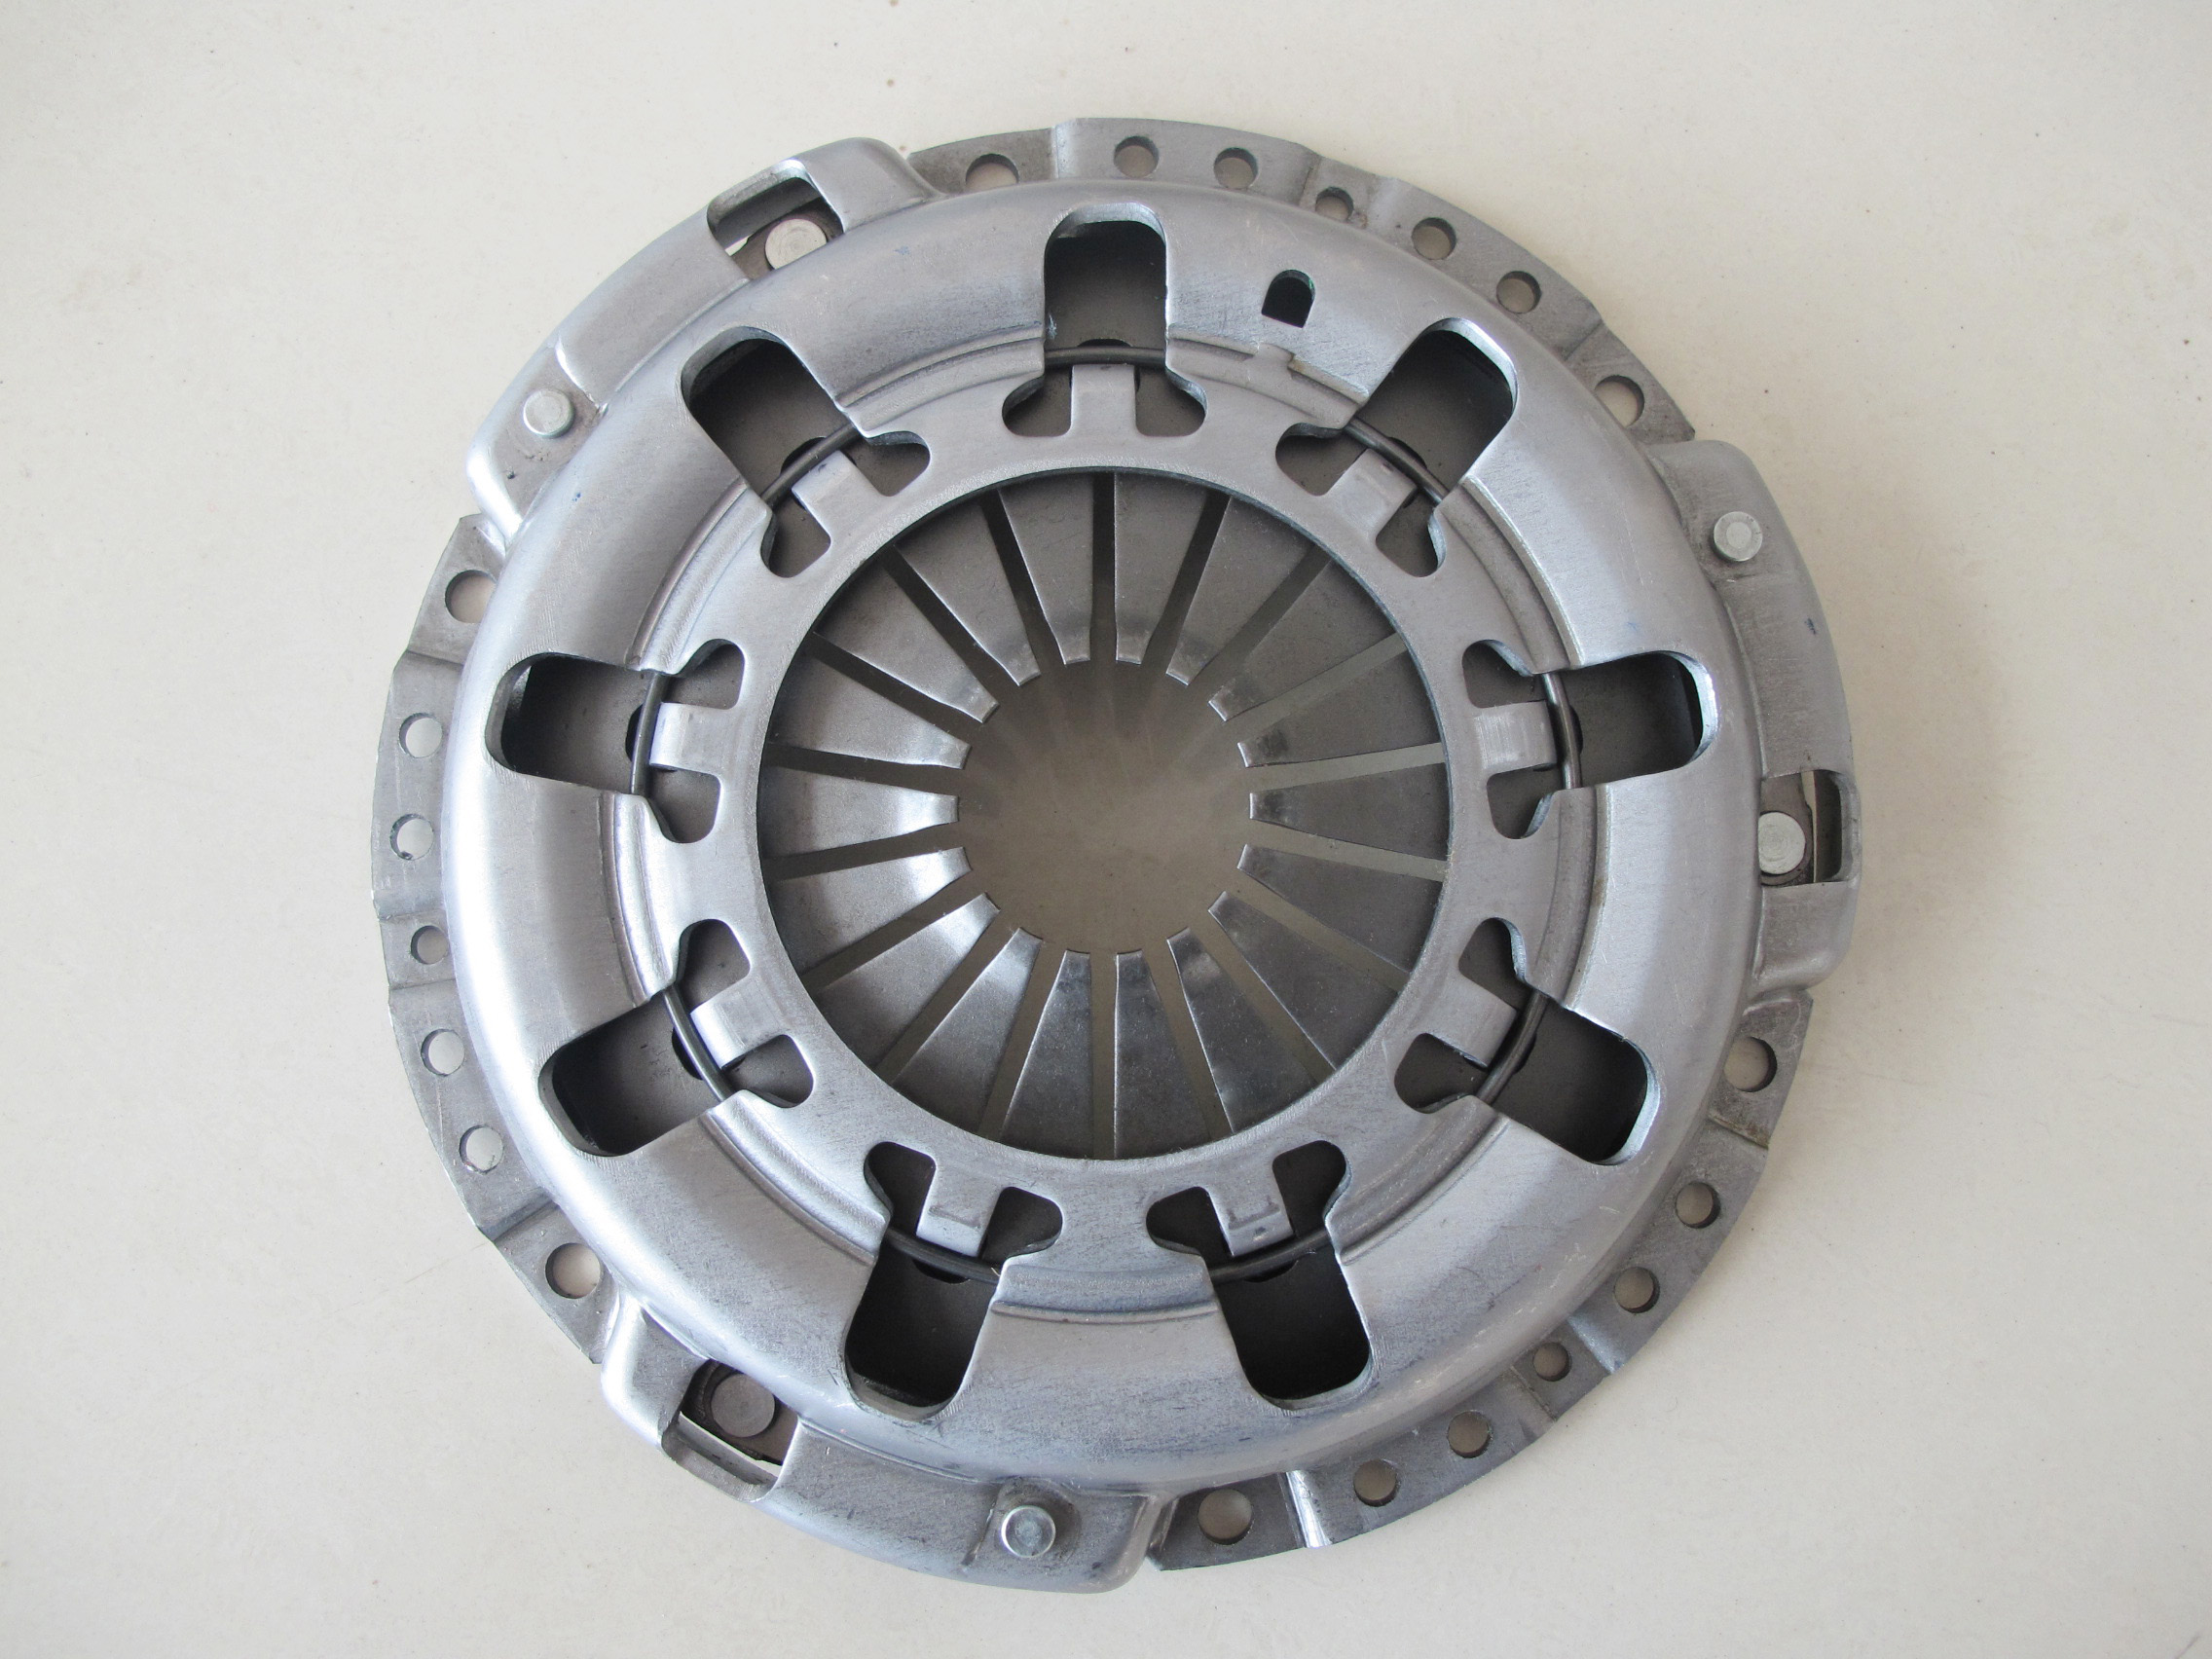 Clutch Disc for TOY CORCONQ 4A 1.6 3 020 VLD 20B 1 020 V03 00B NP50SCRN31P-4B